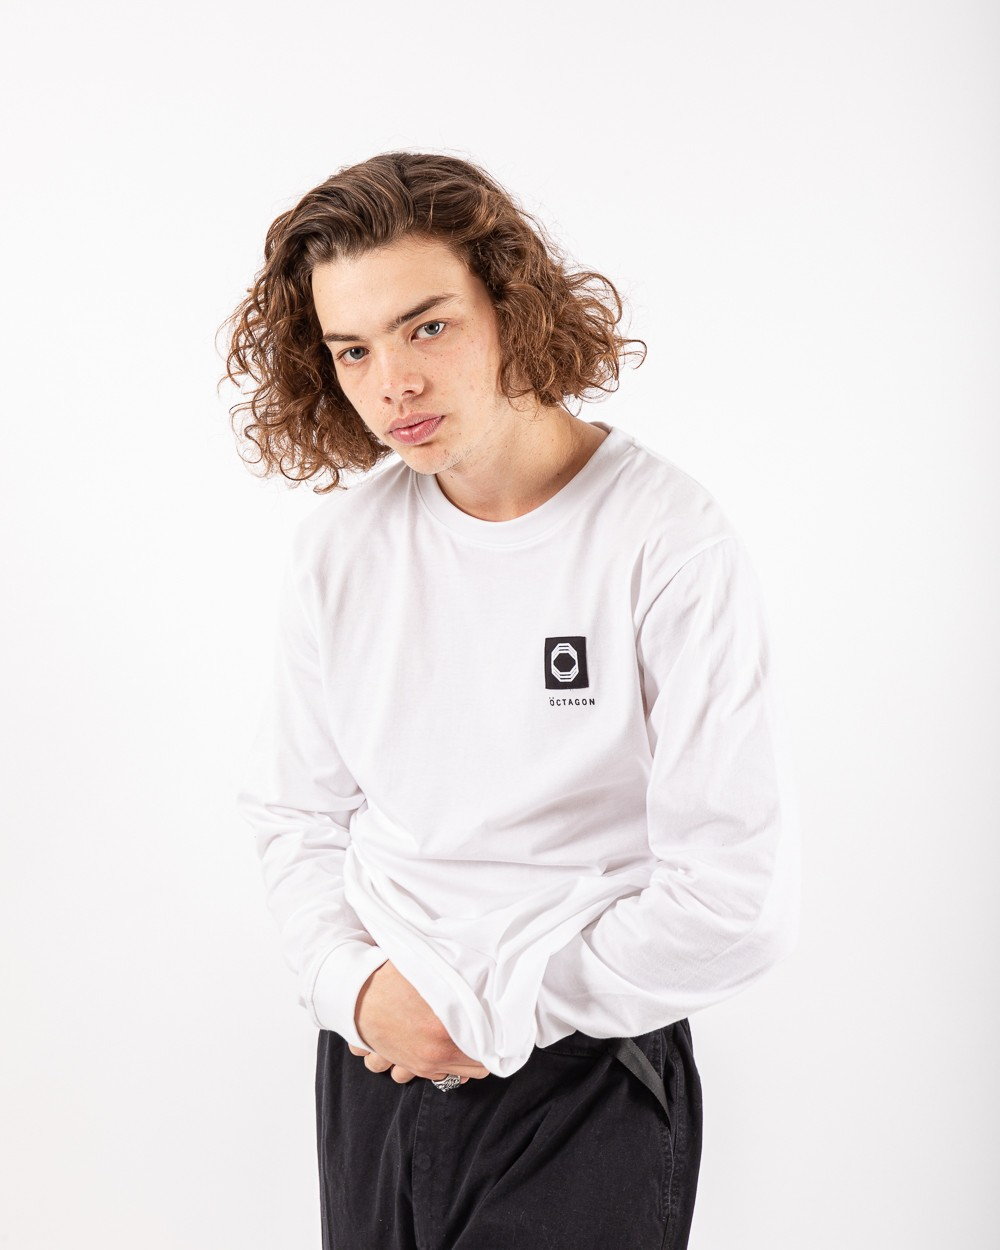 Neosis L/s Tee